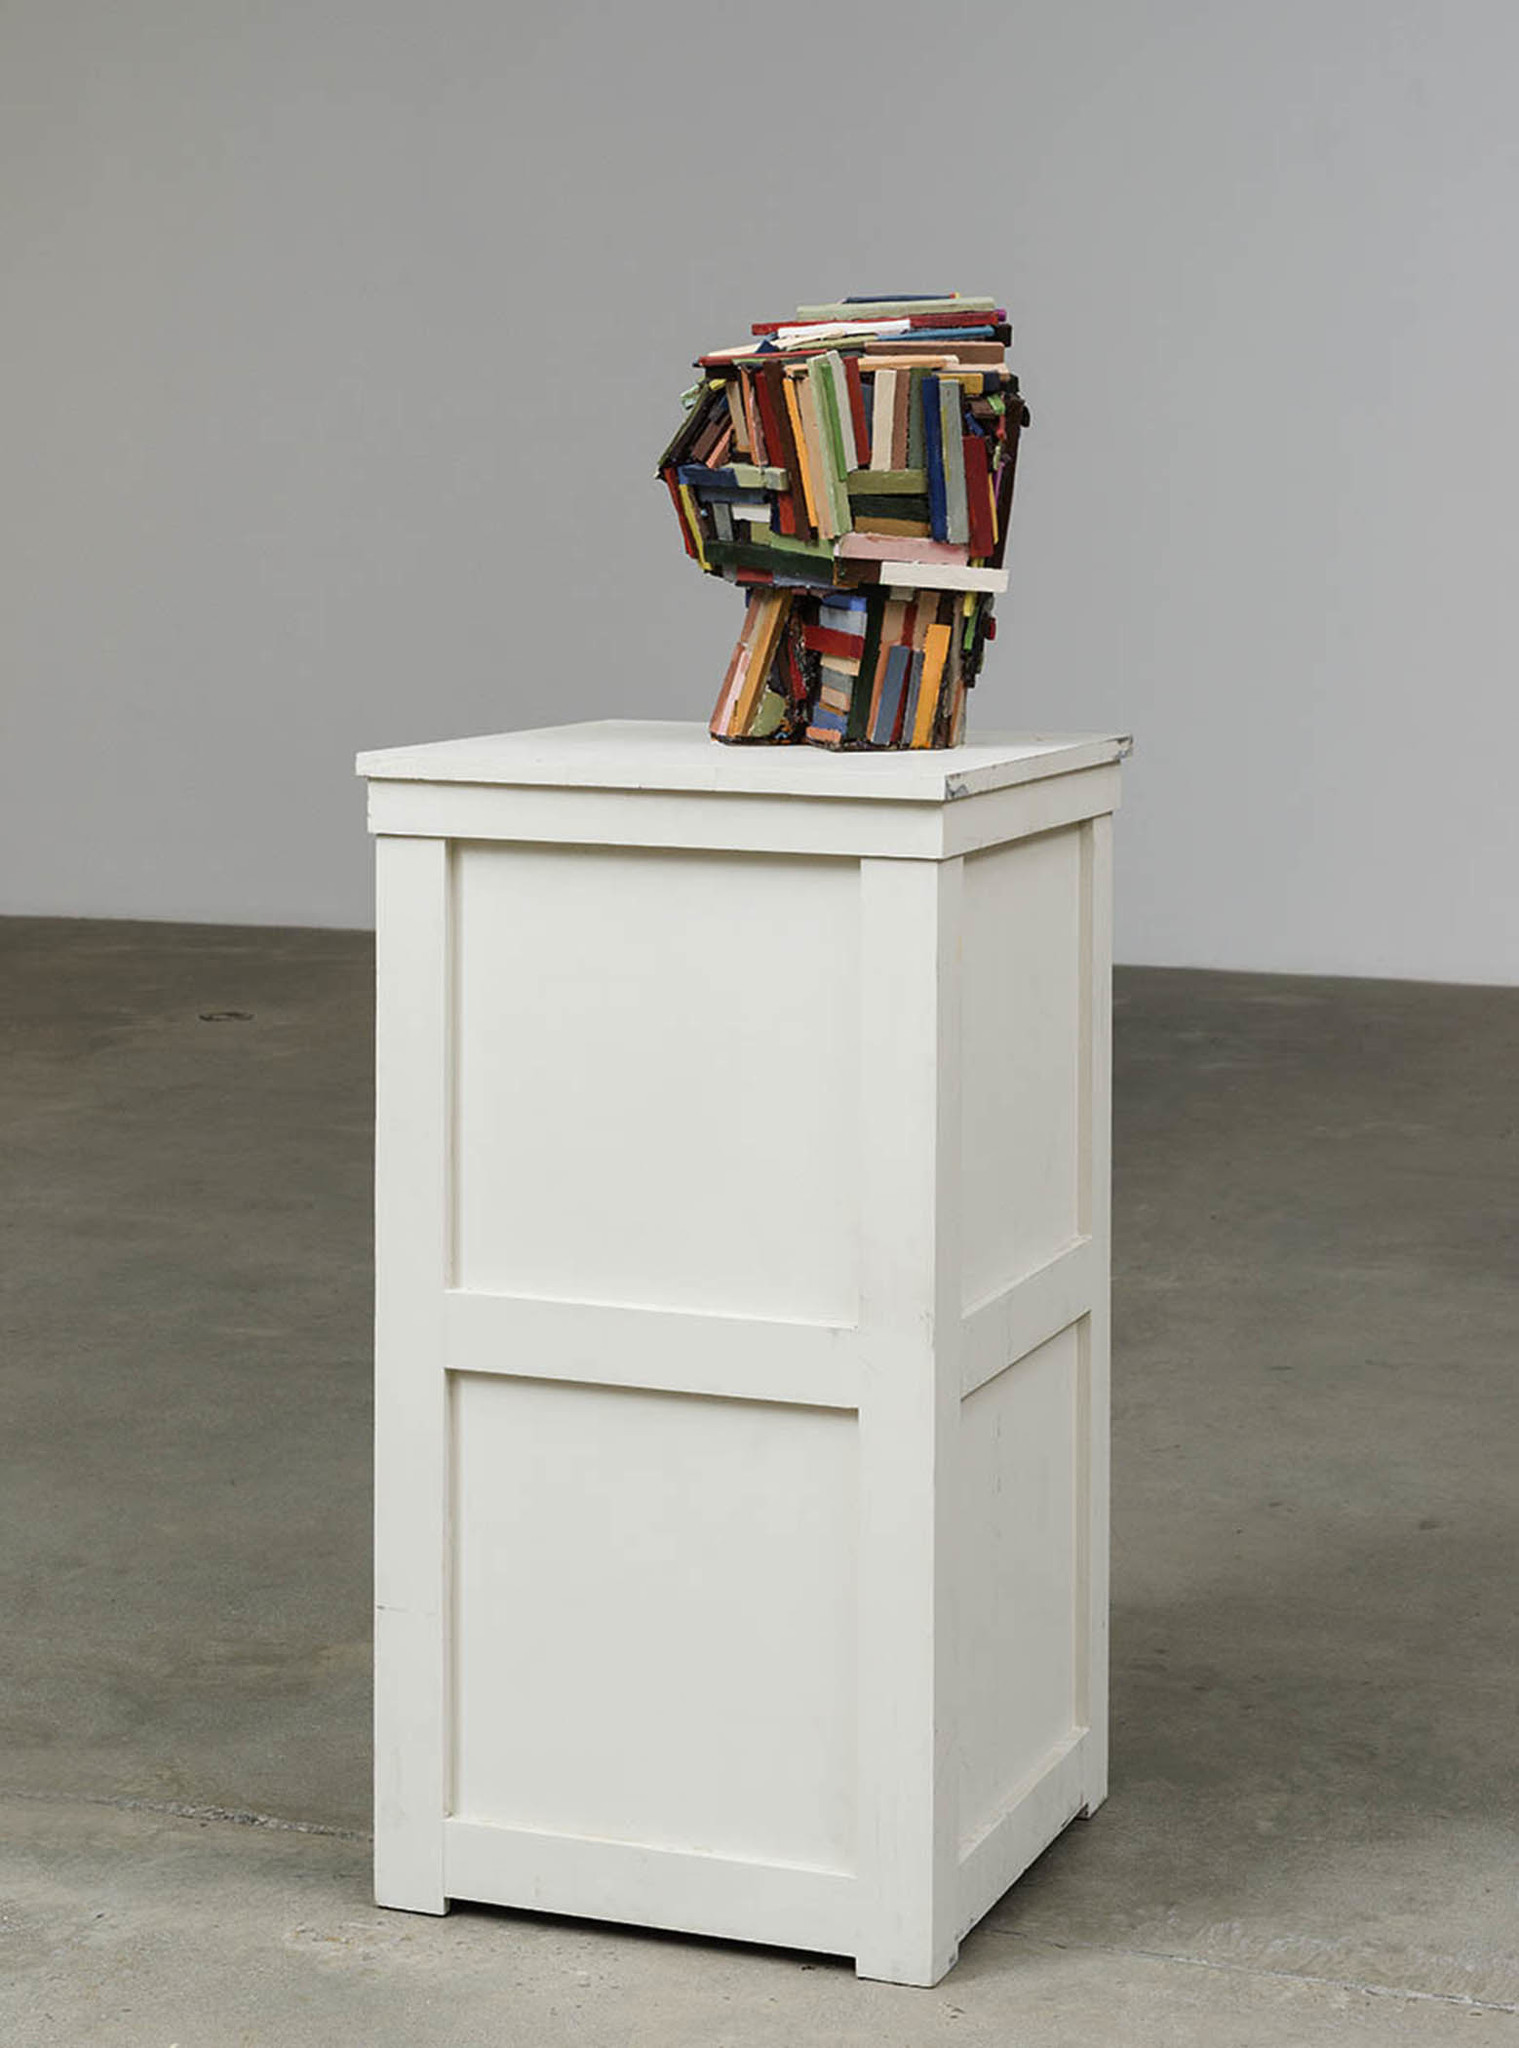 """Jeff Colson's """"Blockhouse,"""" 2017, urethane resin, acrylic paint, wood, 53 inches by 20 inches 20 inches."""